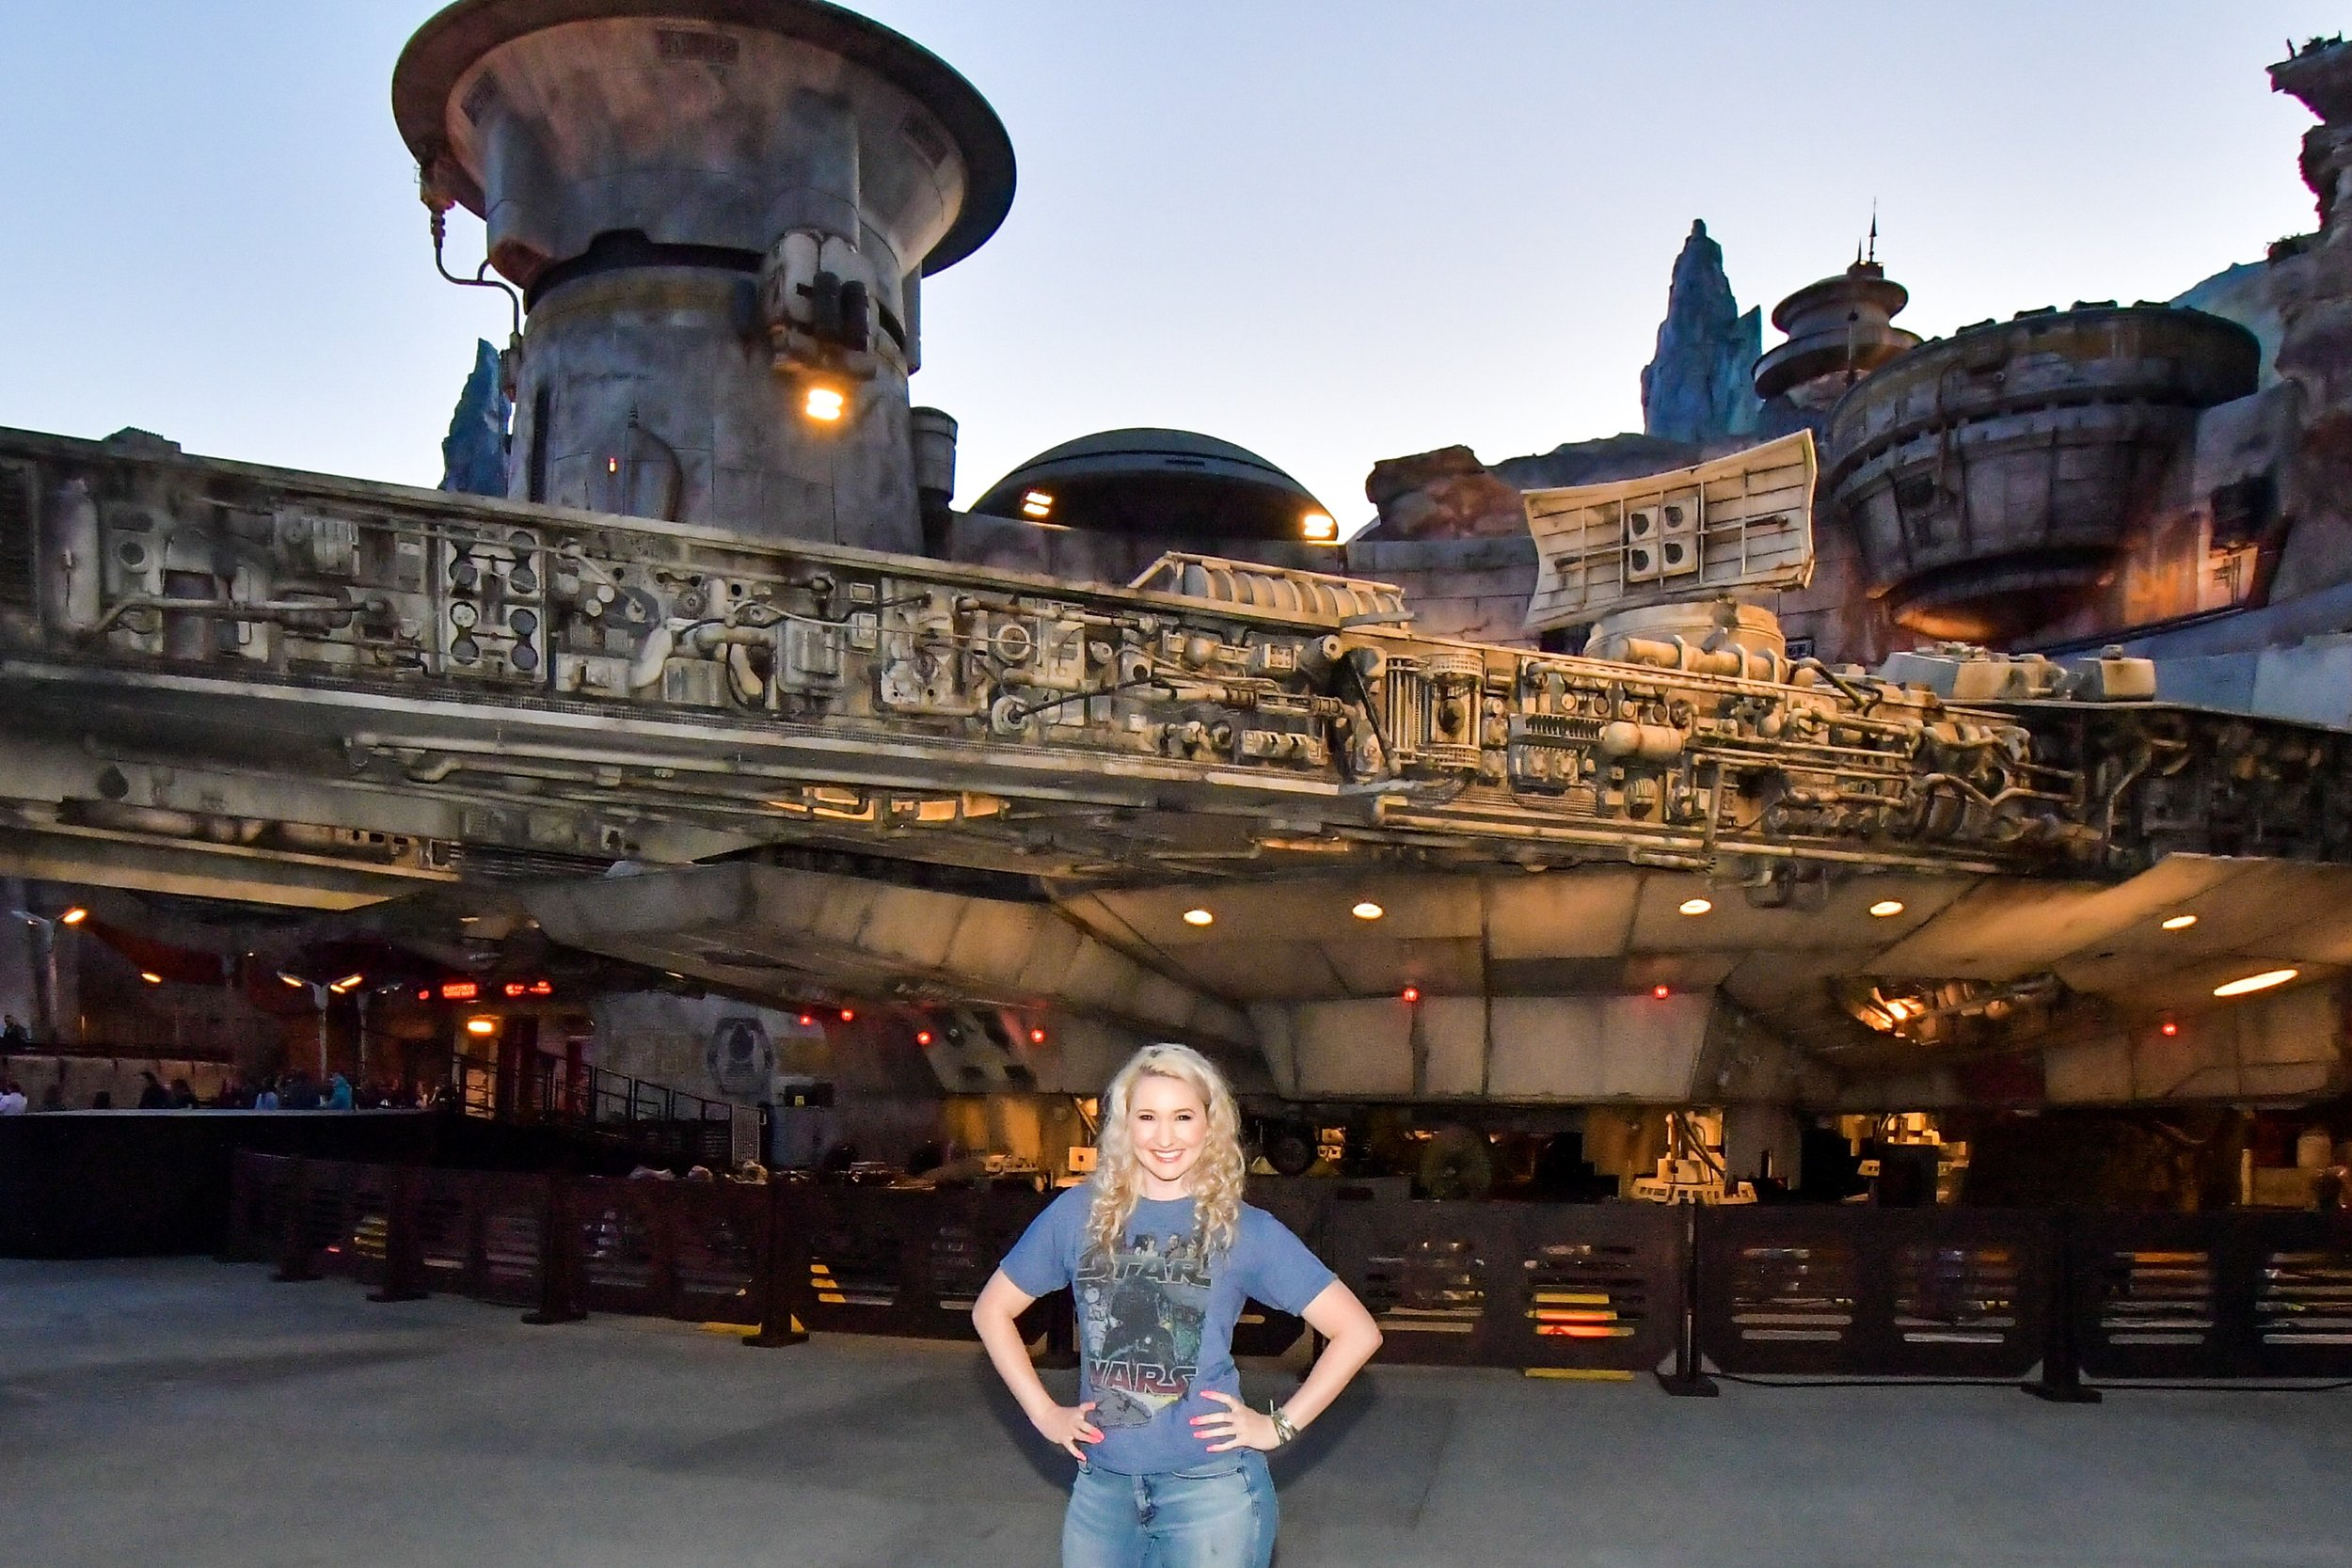 Keeping myself entertained in front of the Millennium Falcon while my friends rode Smugglers Run for the 2nd and 3rd time.